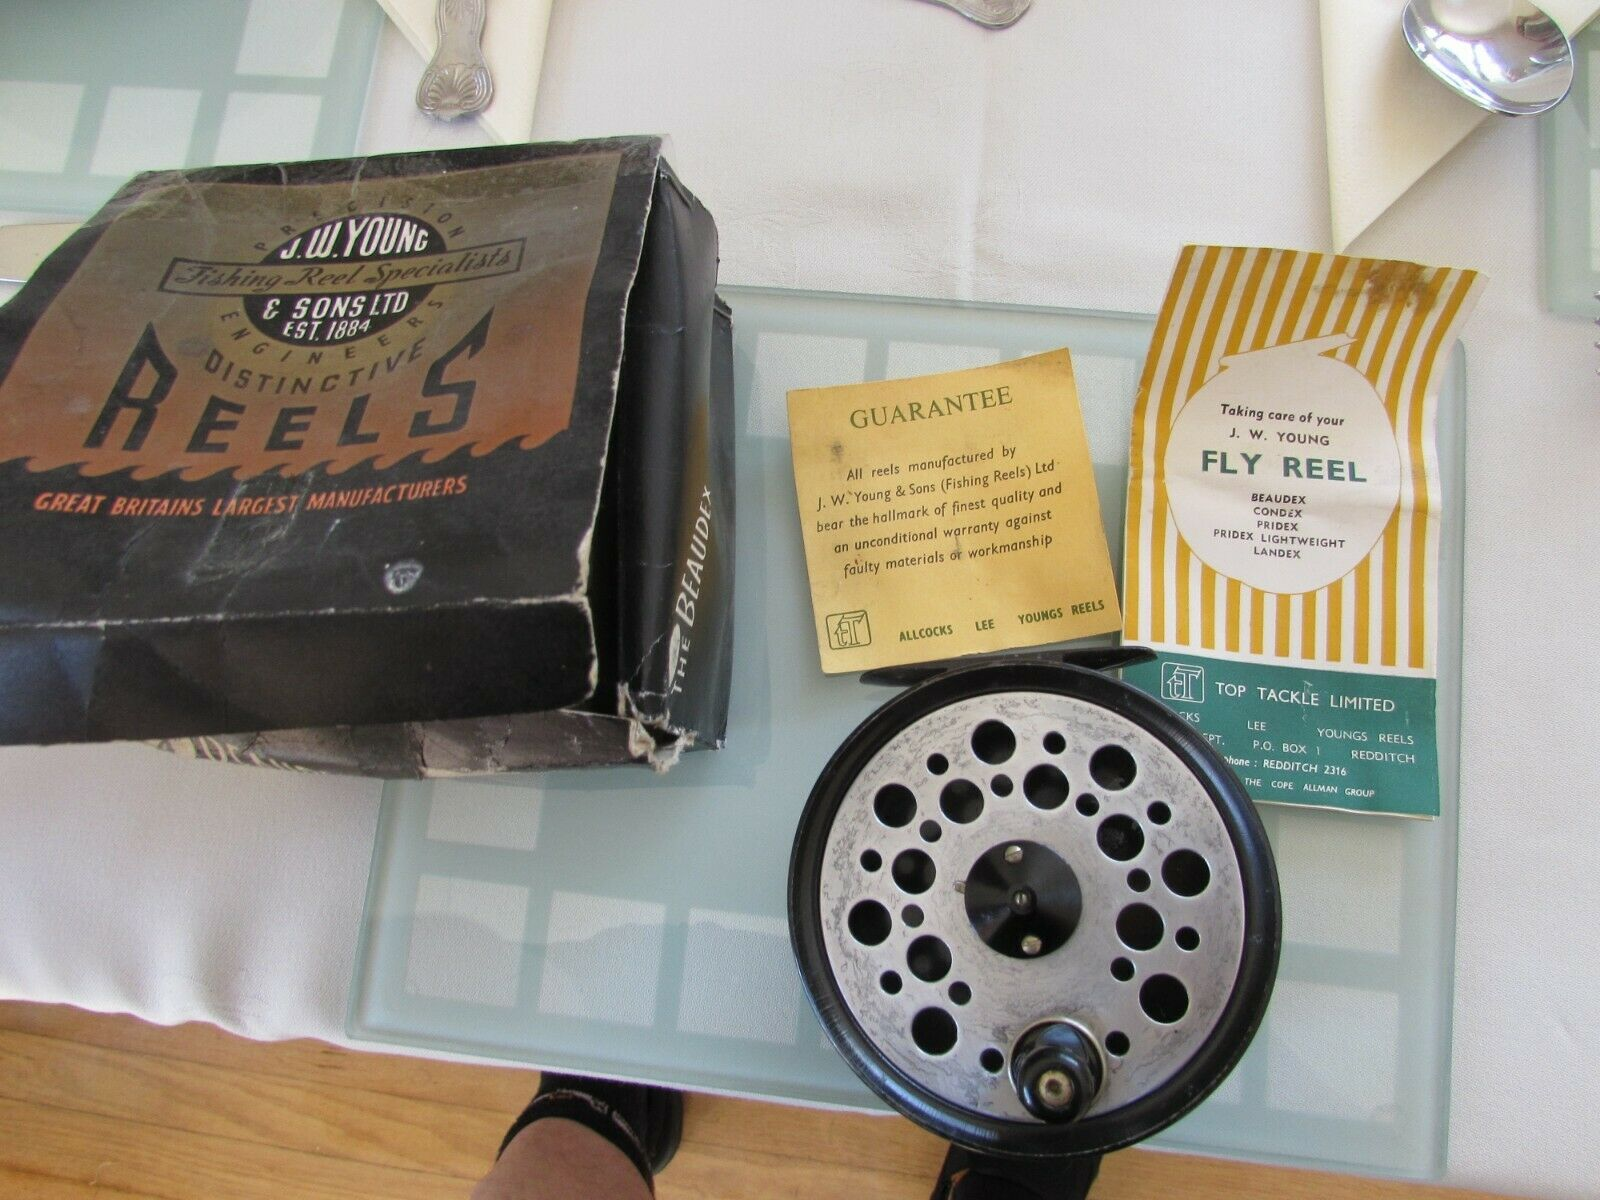 V good vintage youngs beaudex salmon fly fishing reel 4  + lineguard + box etc